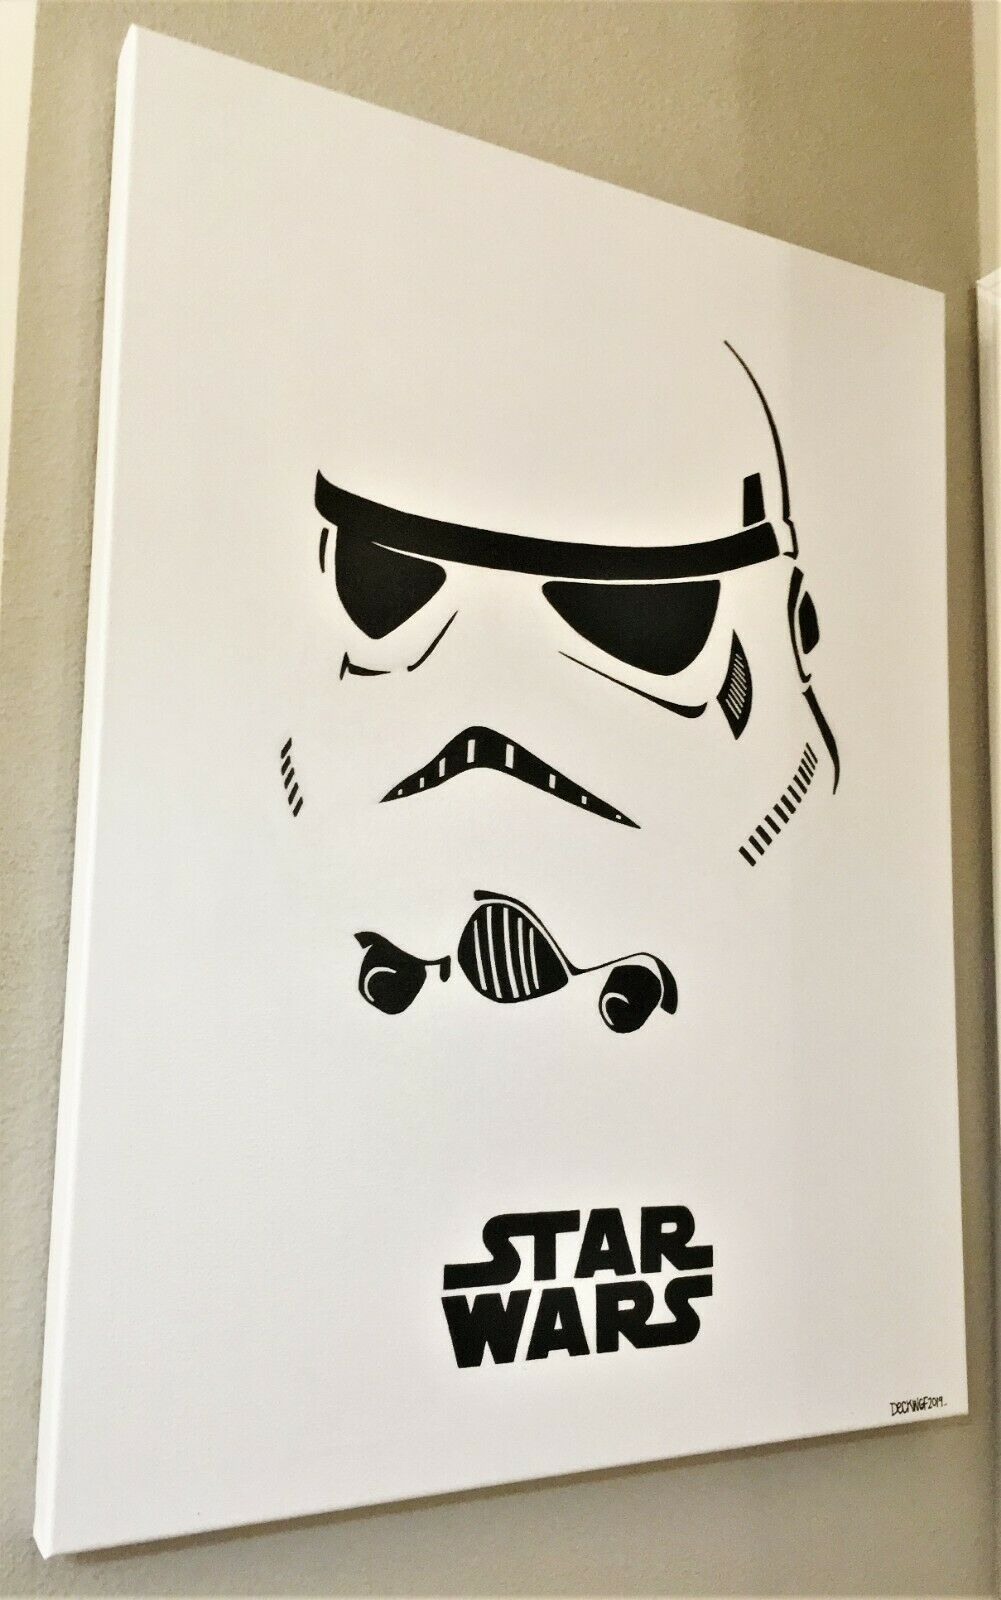 "Star Wars - Storm Trooping 30"" x 40"" canvas"